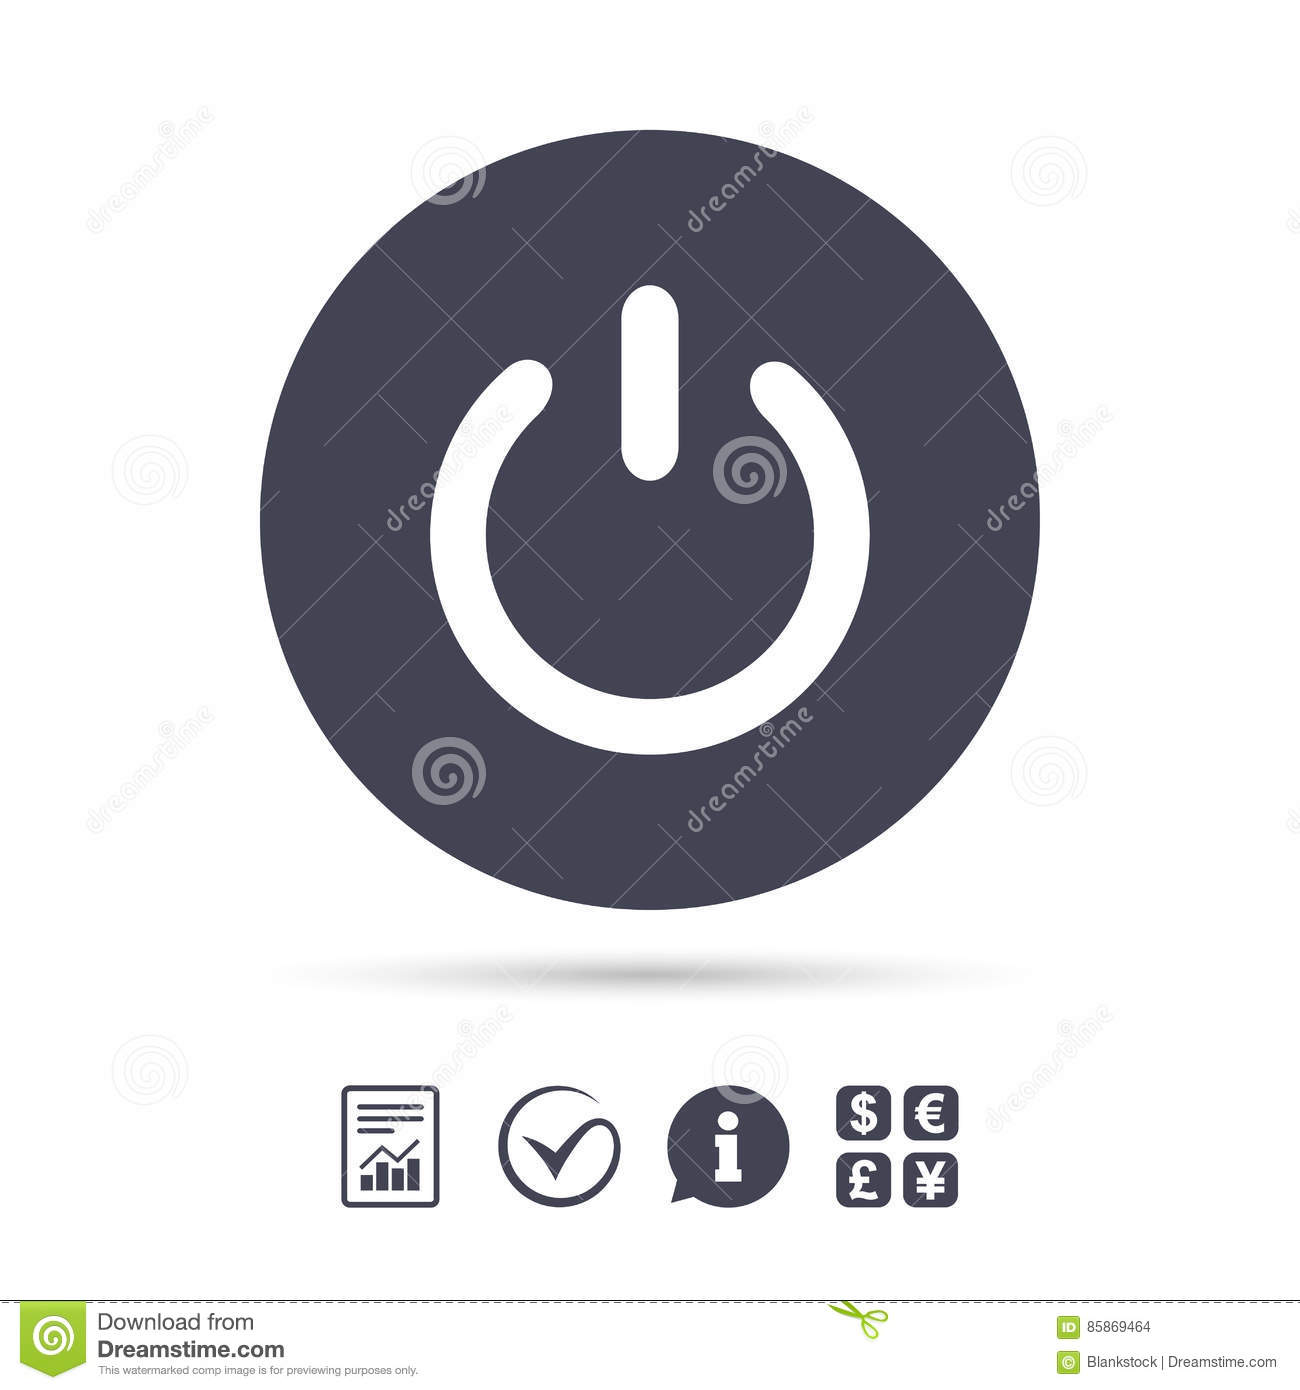 Power Sign Icon. Switch On Symbol. Stock Vector - Illustration of ...